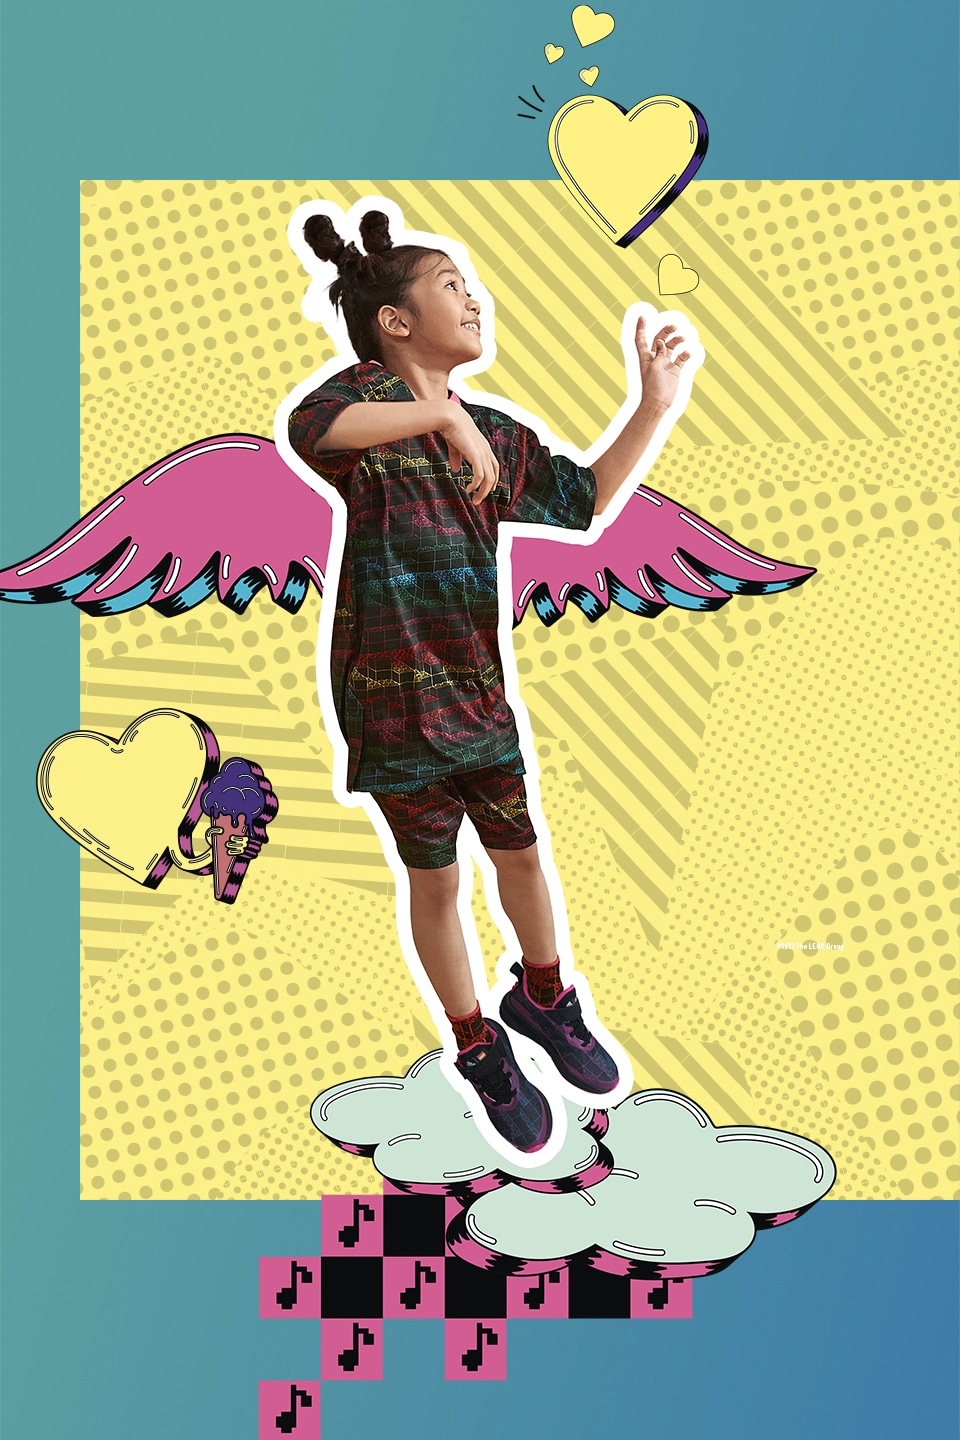 Adidas and LEGO launch shoe and clothing collaboration that promotes self-expression 19